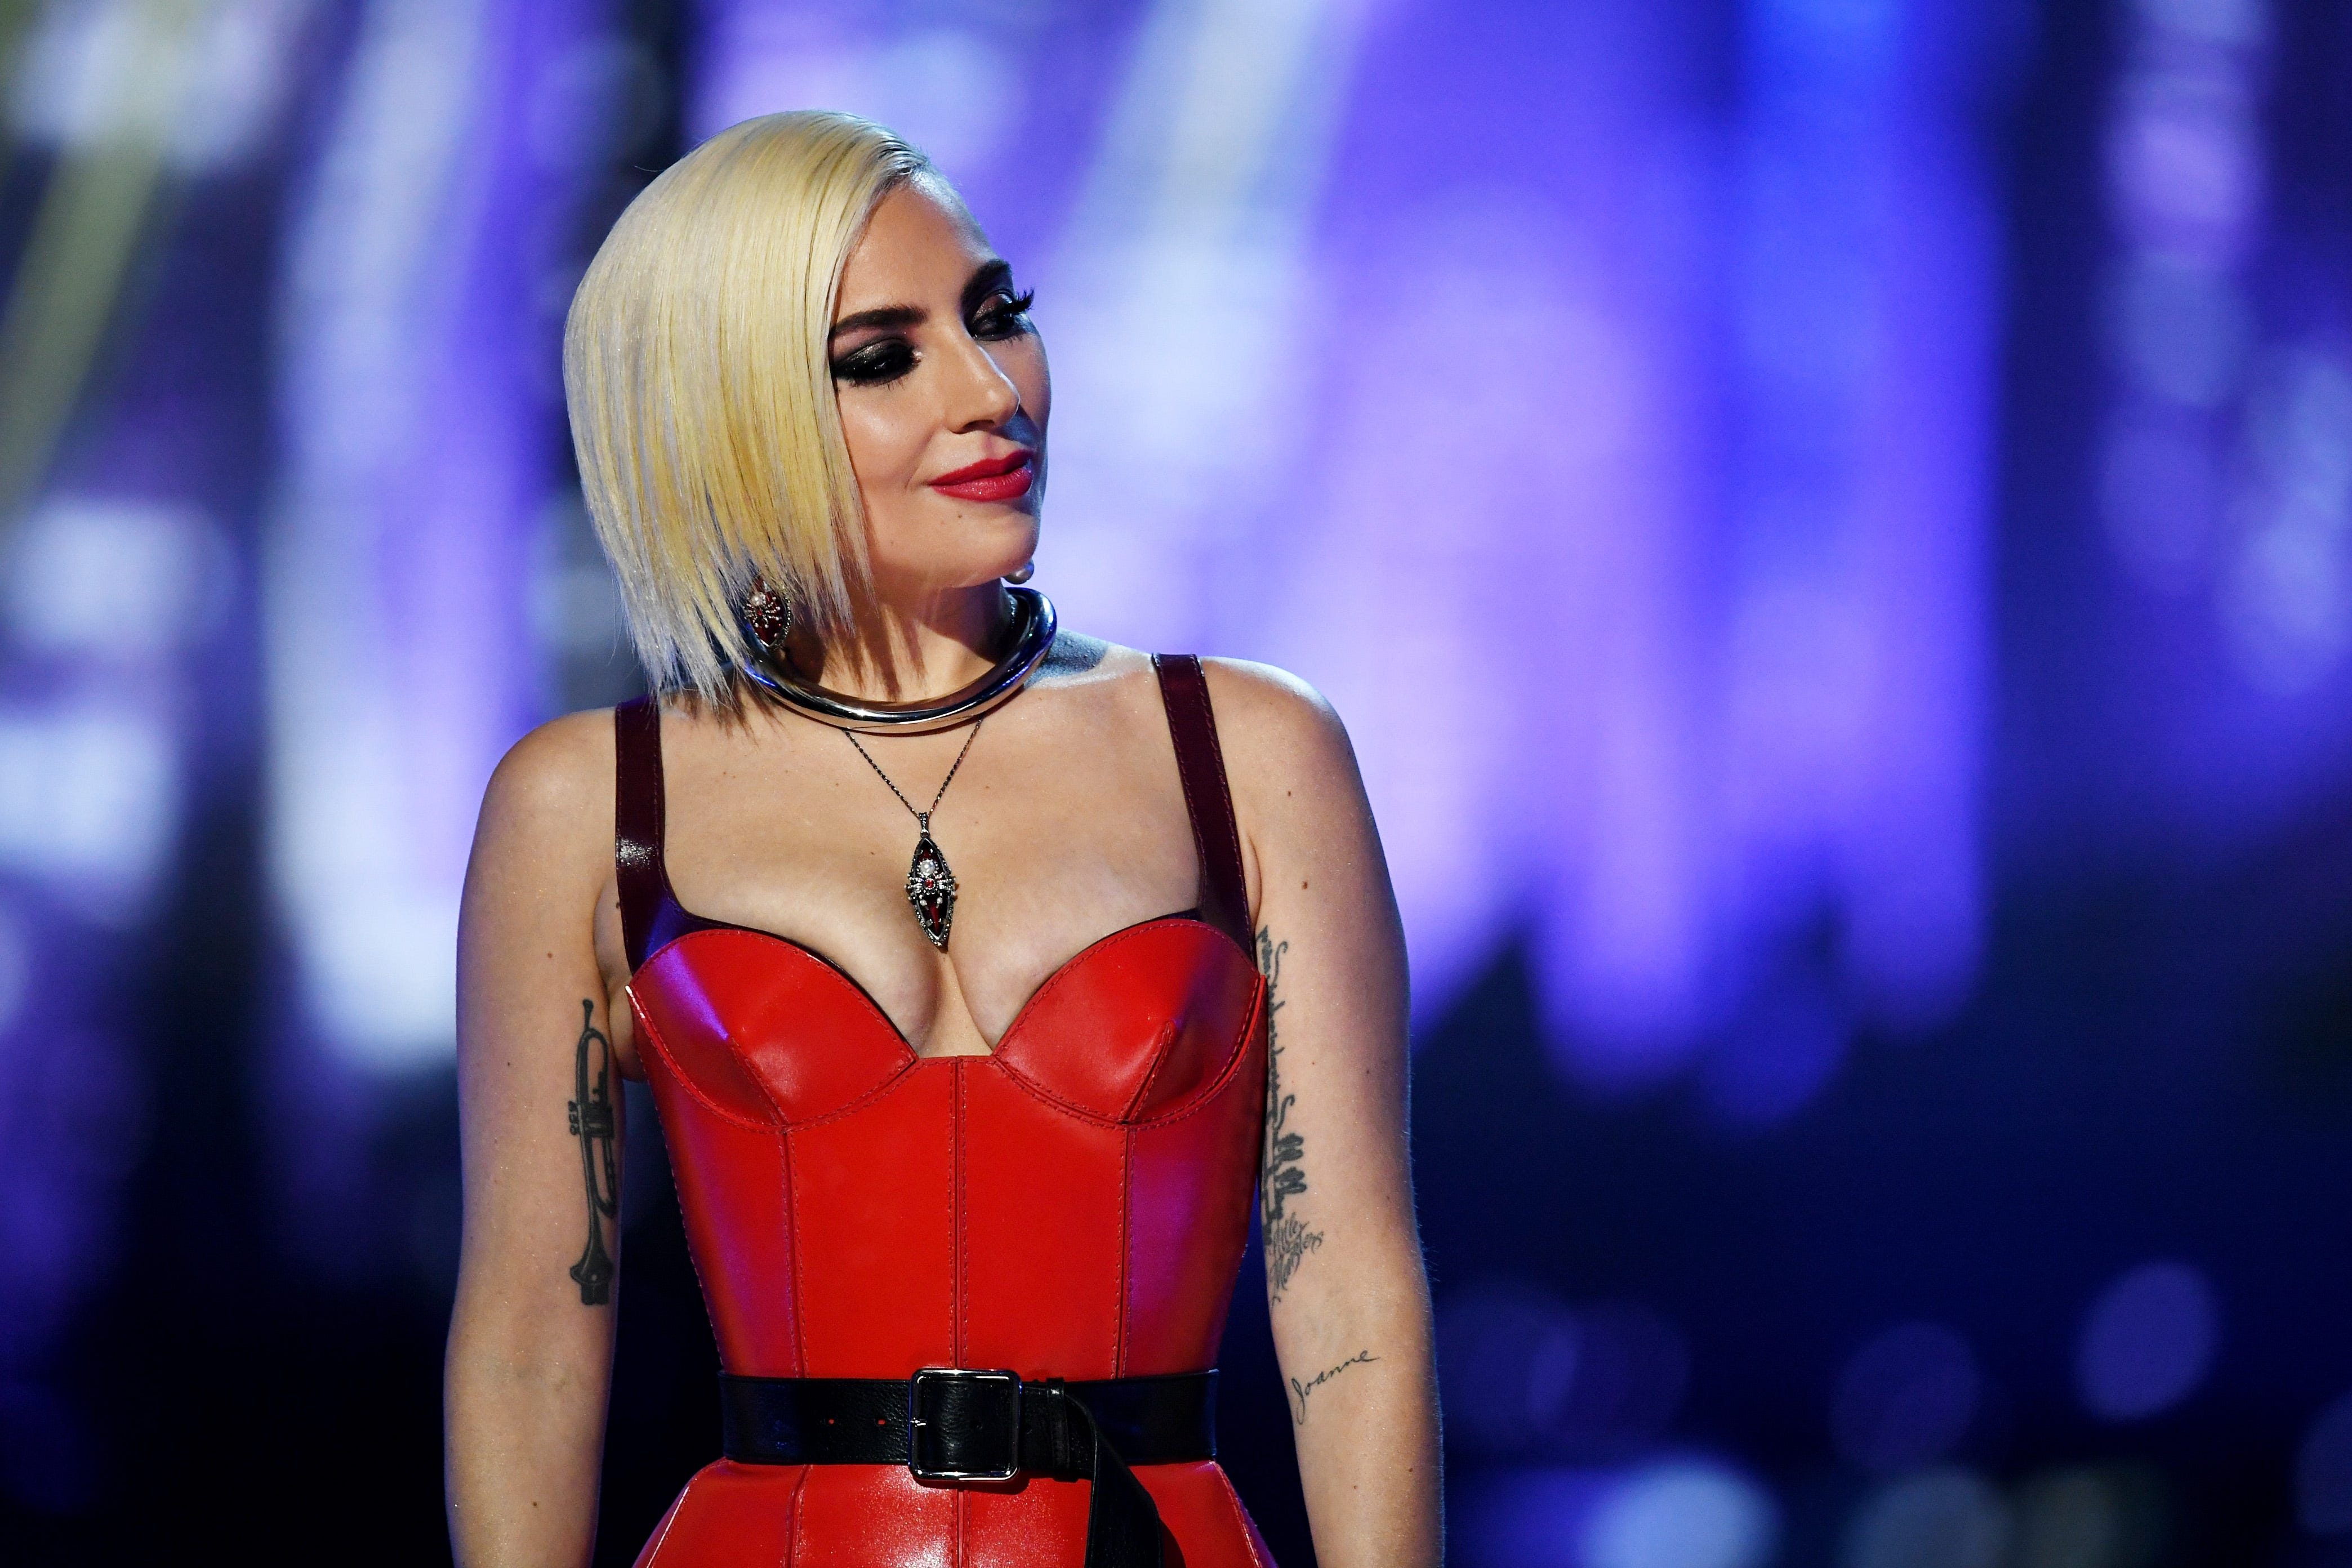 Lady Gaga Flashes Her Post Op Vagina